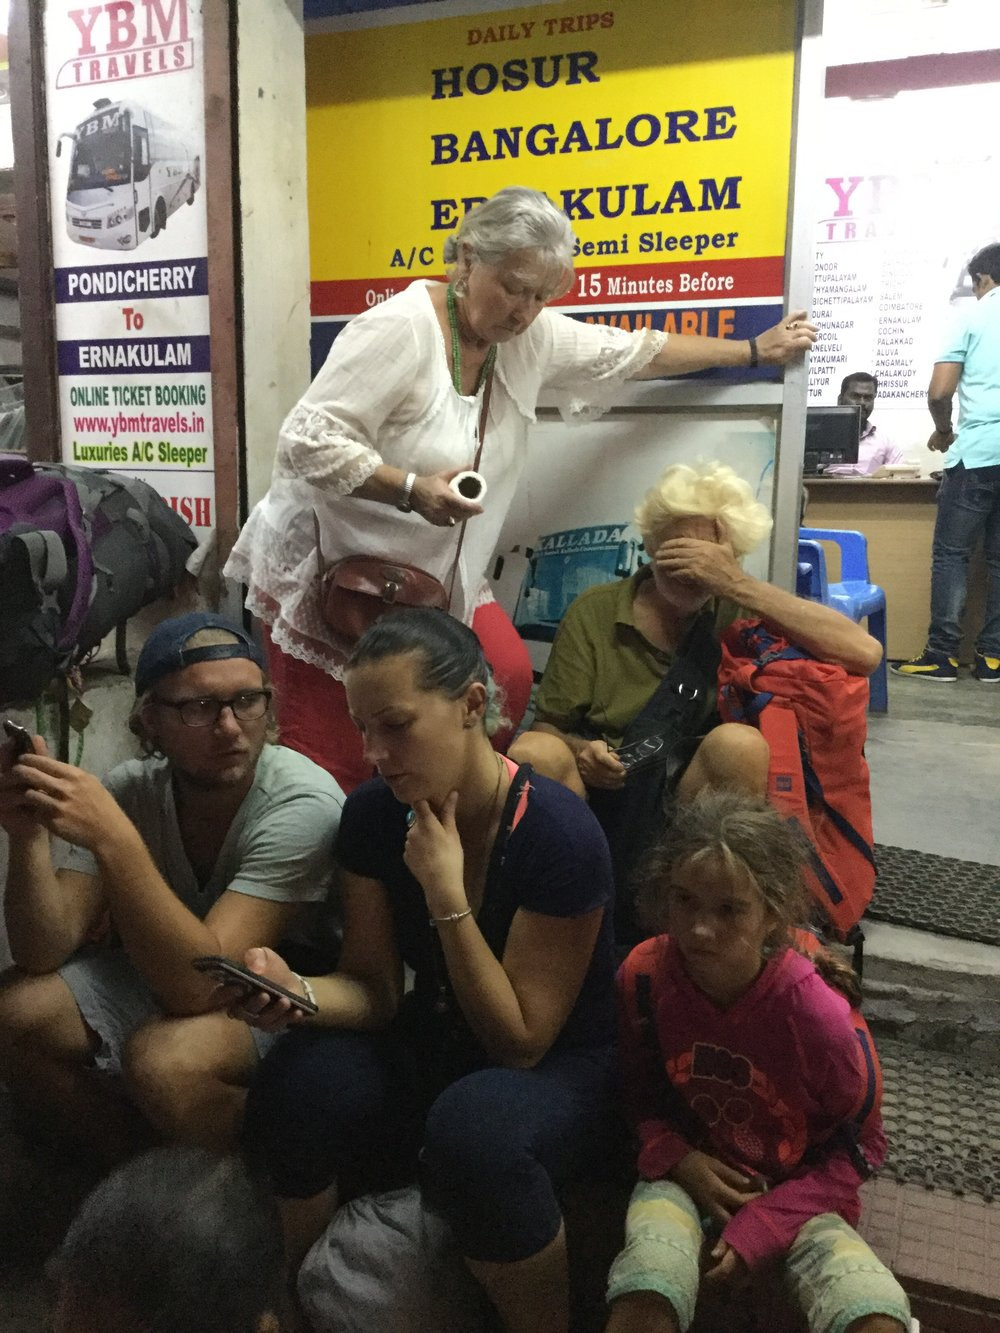 Waiting for the bus in Pondi. We were all tired - it left at 10 pm.